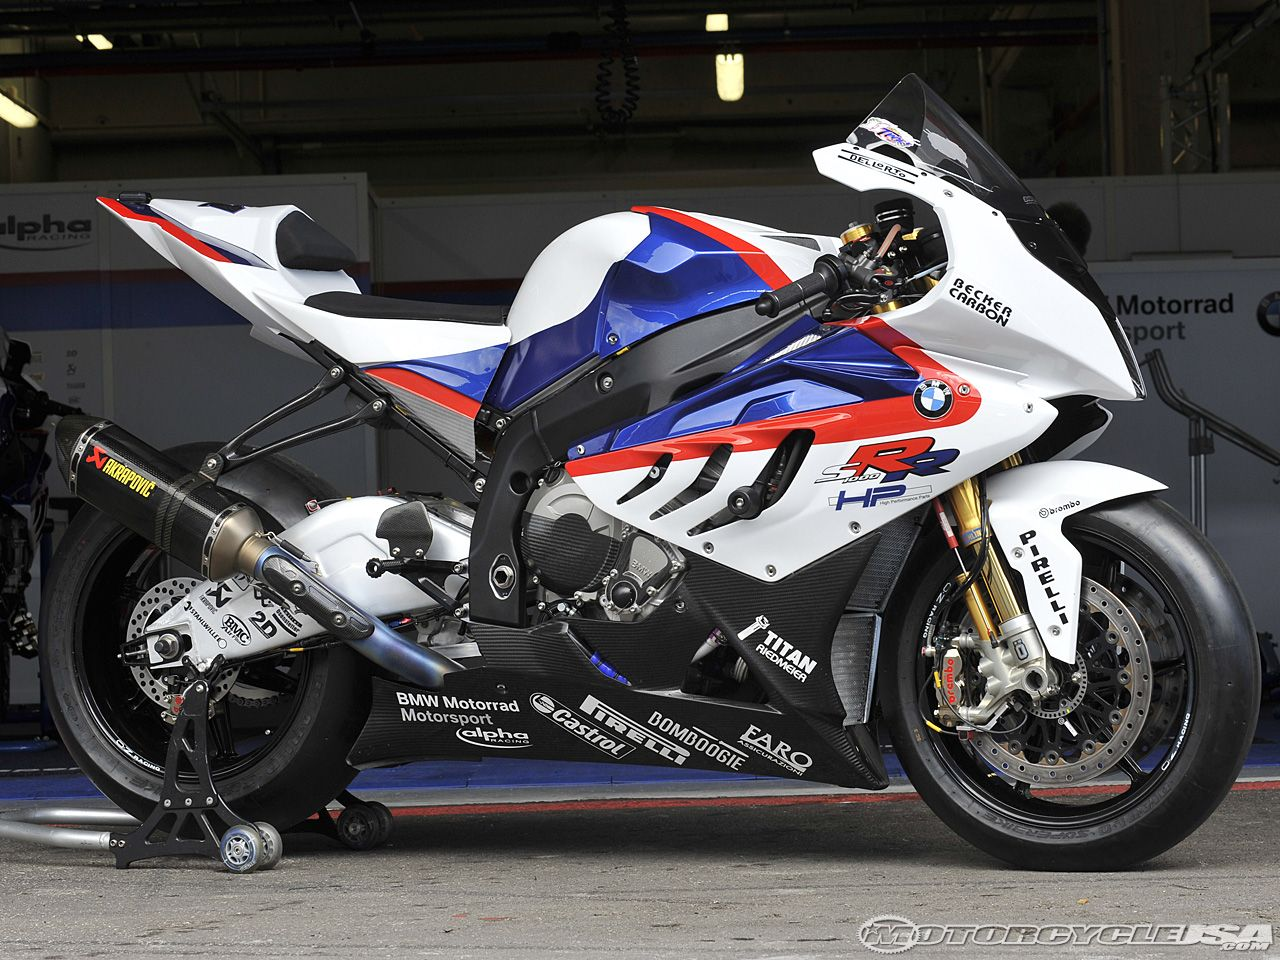 Bmw S 1000 Rr Ride Report Webbikeworld Bmw S1000rr Motorcycle